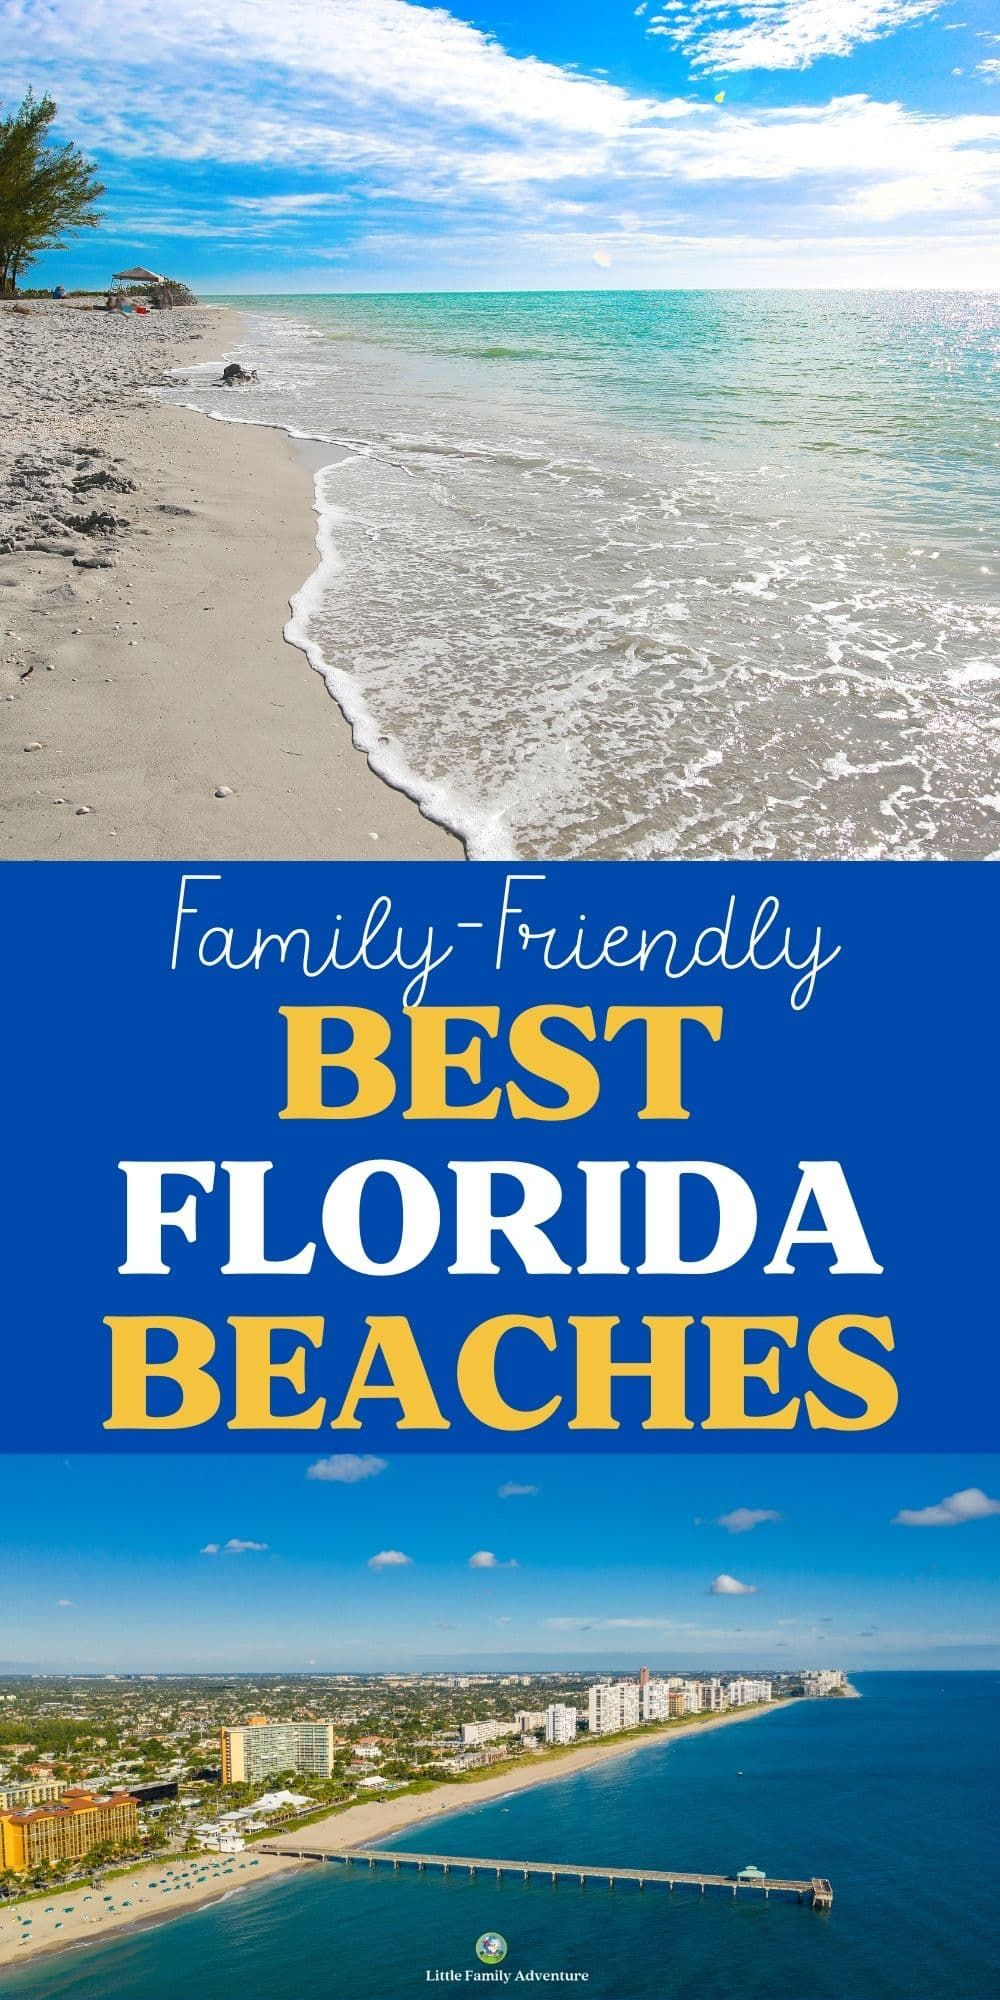 The 2021 Guide To The Best Family Friendly Florida Beaches In 2021 Florida Beaches Florida Beaches Vacation Florida Travel